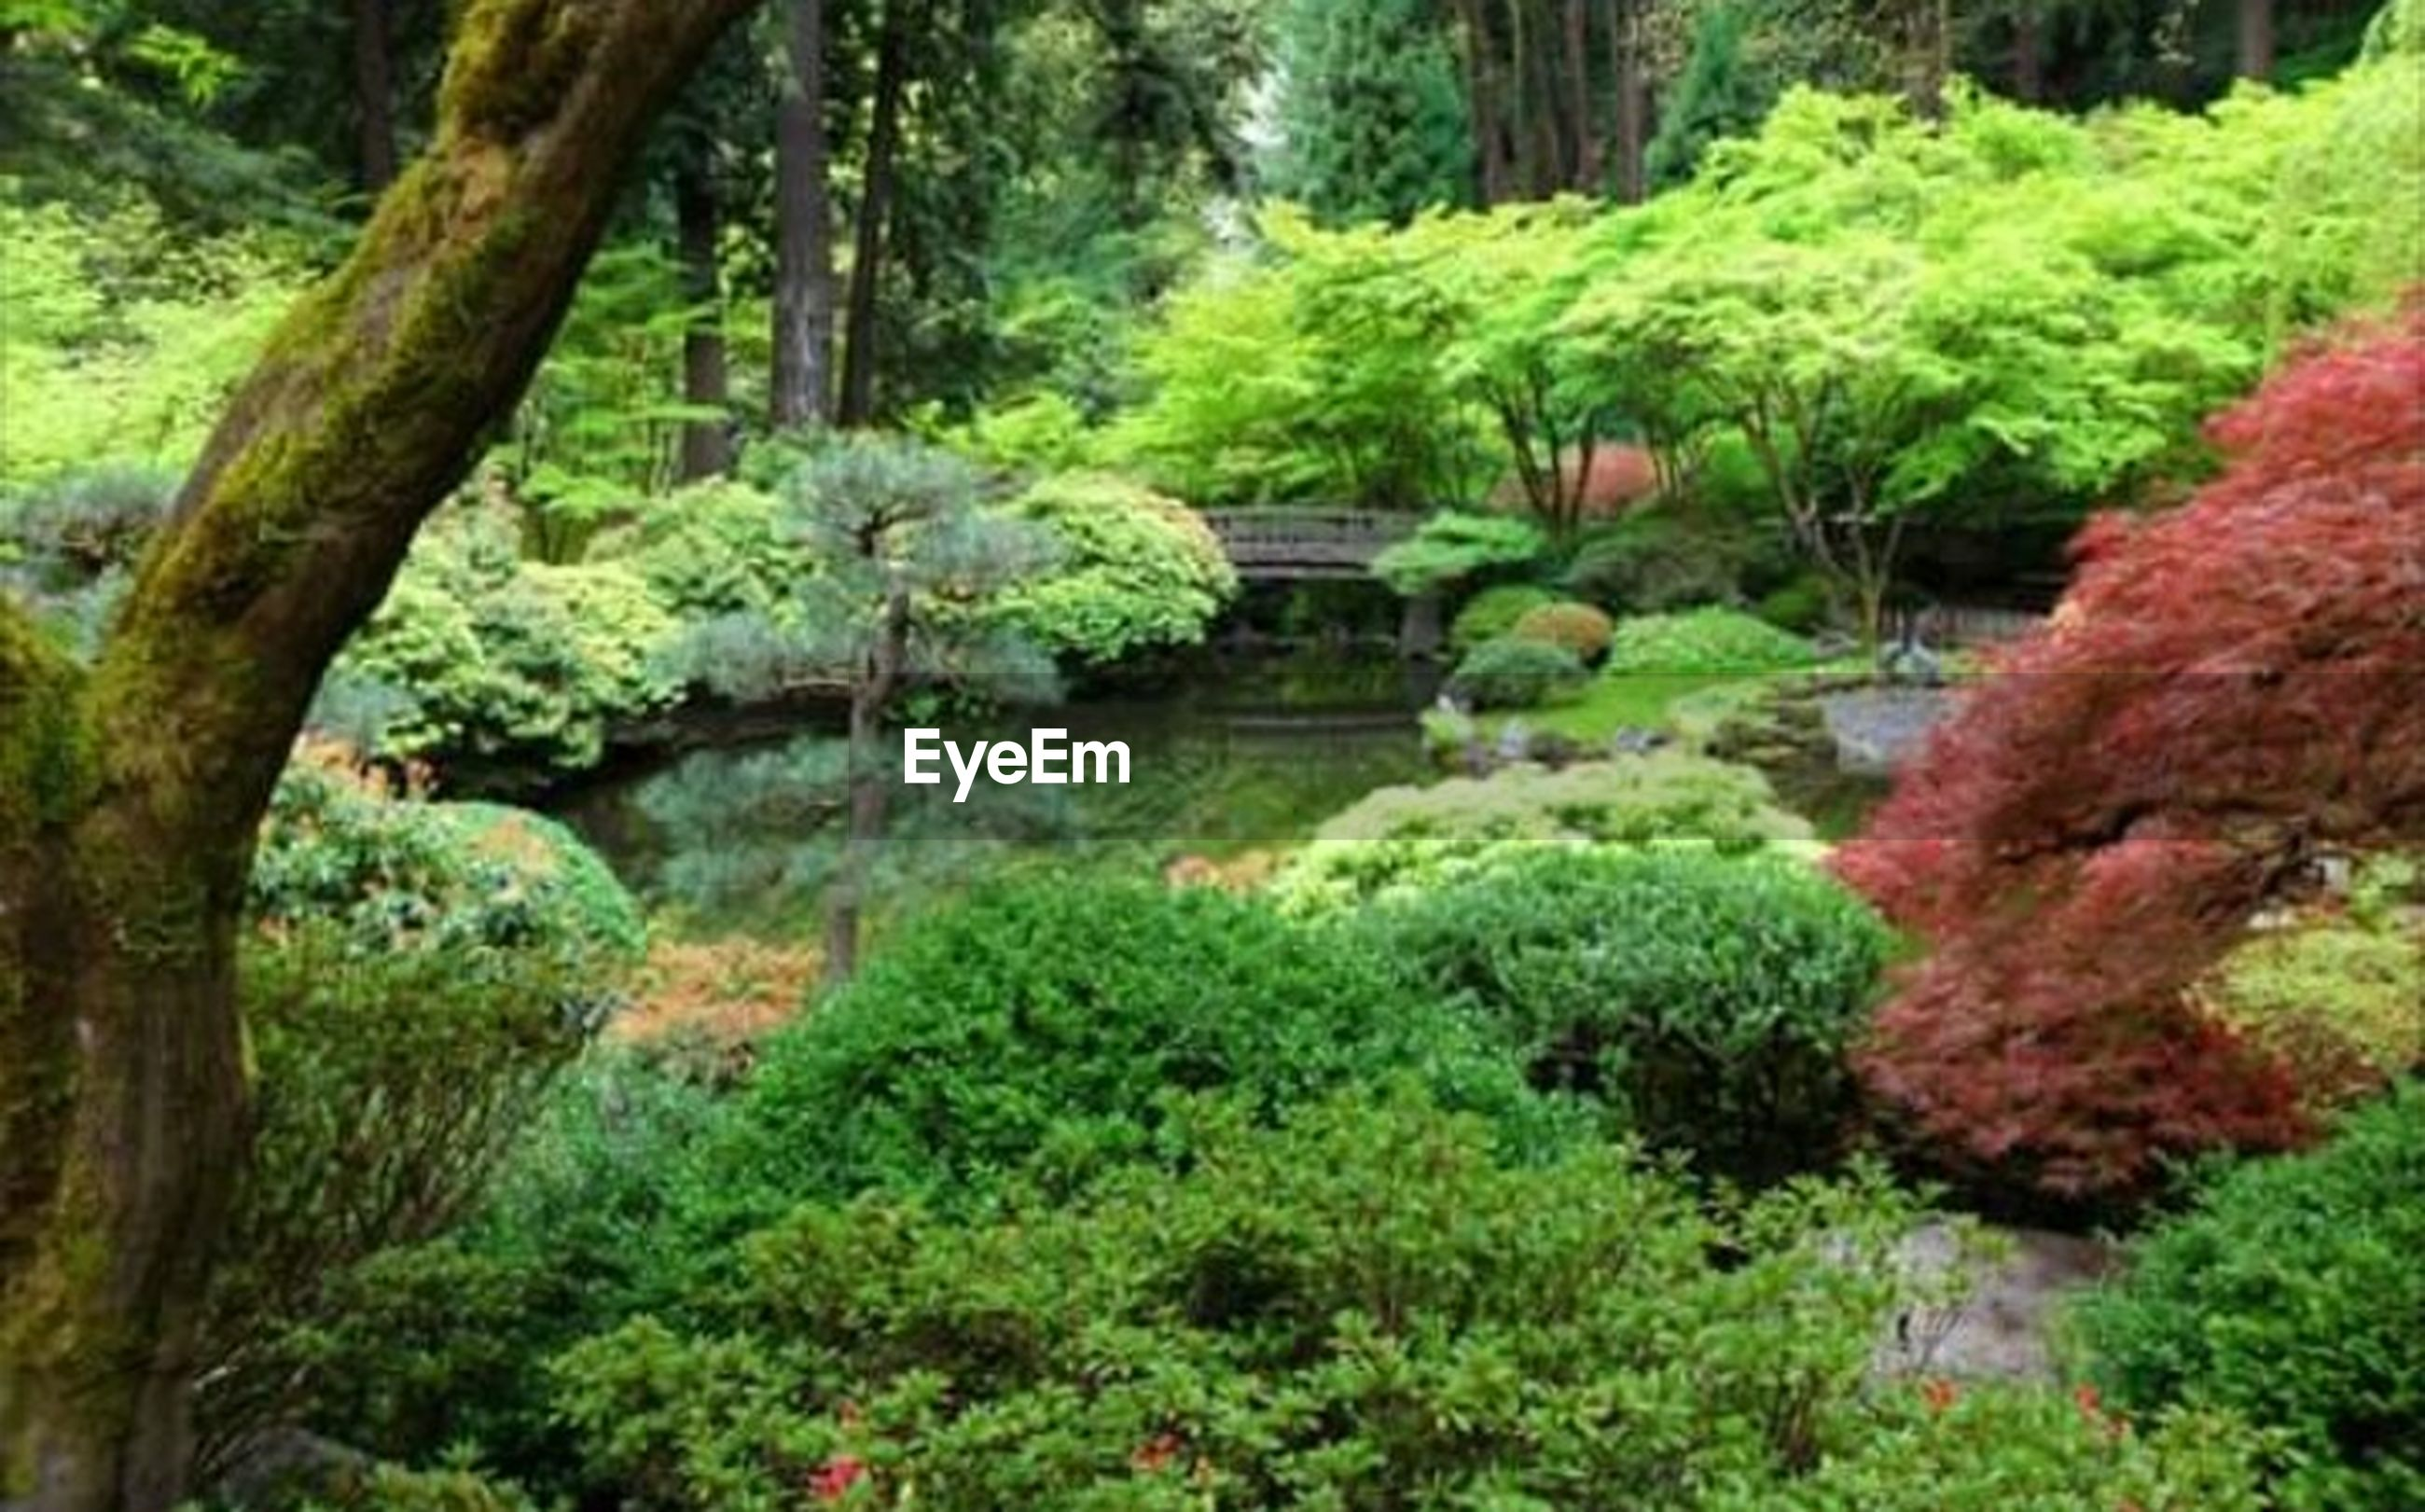 plant, beauty in nature, water, green color, nature, tree, forest, formal garden, bush, tranquility, japanese garden, garden, ornamental garden, lush foliage, foliage, no people, landscaped, lake, outdoors, woodland, stream - flowing water, flowerbed, rainforest, evergreen tree